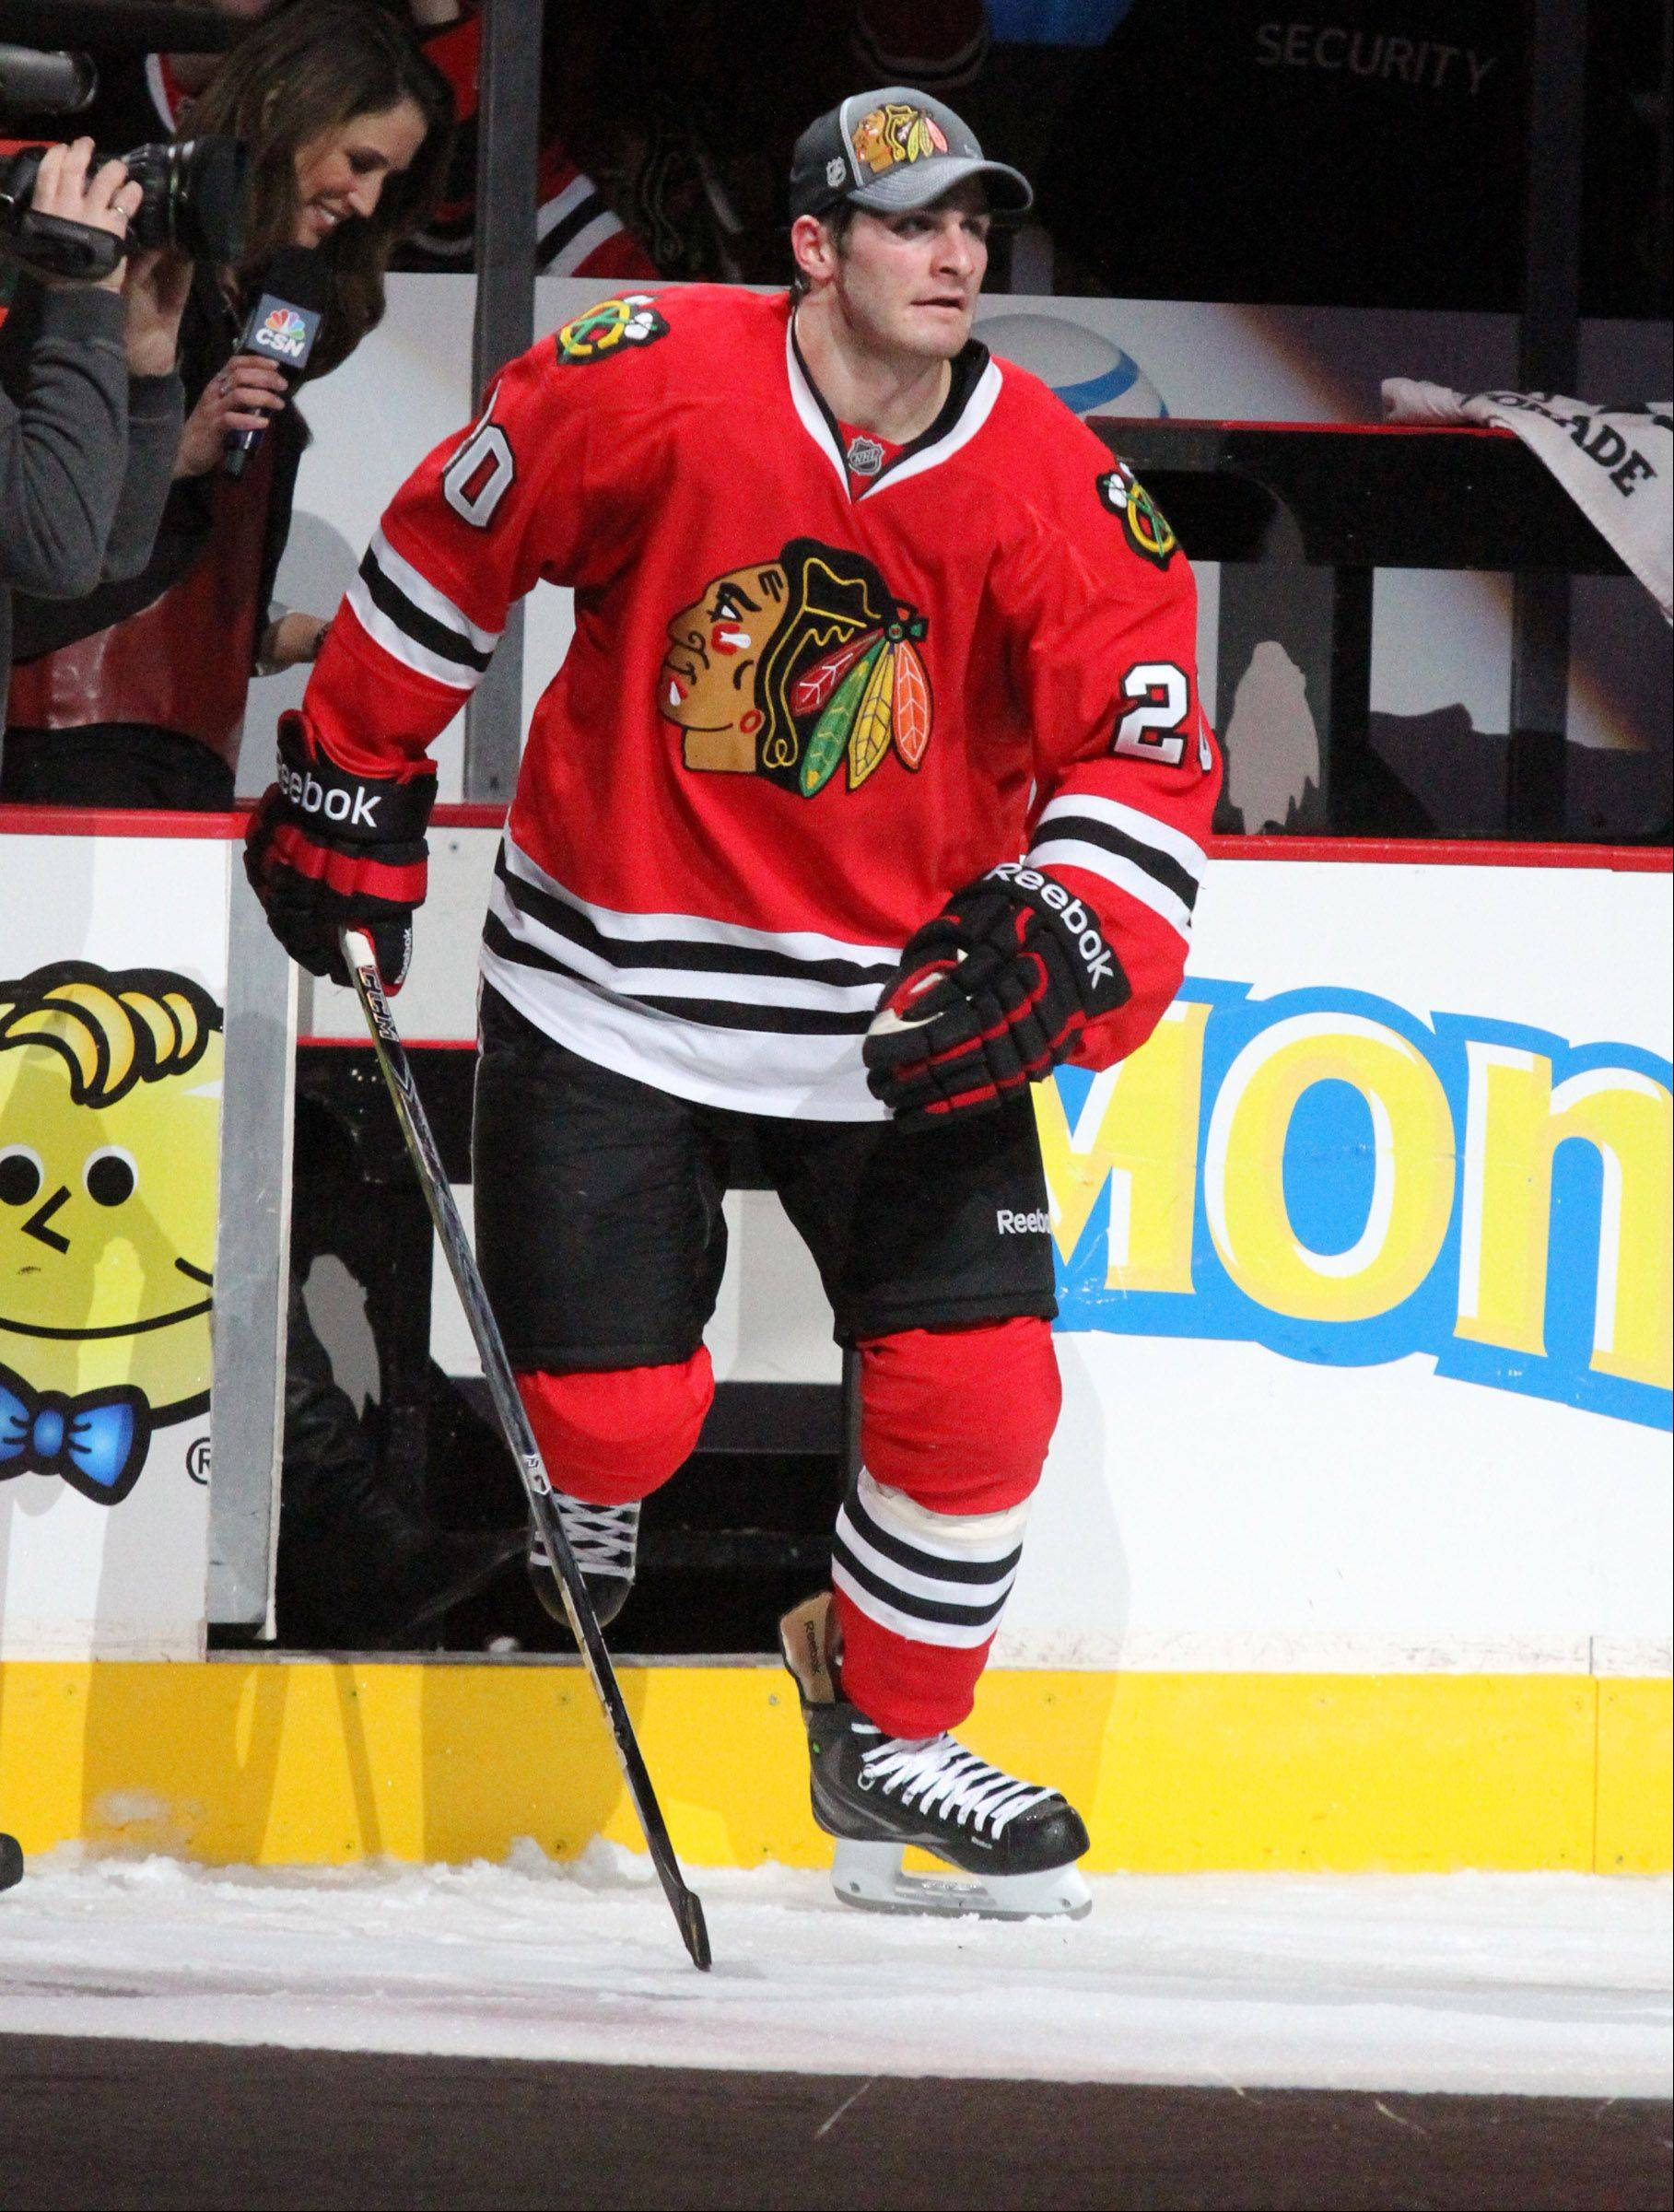 Hawks to give Saad a look at center